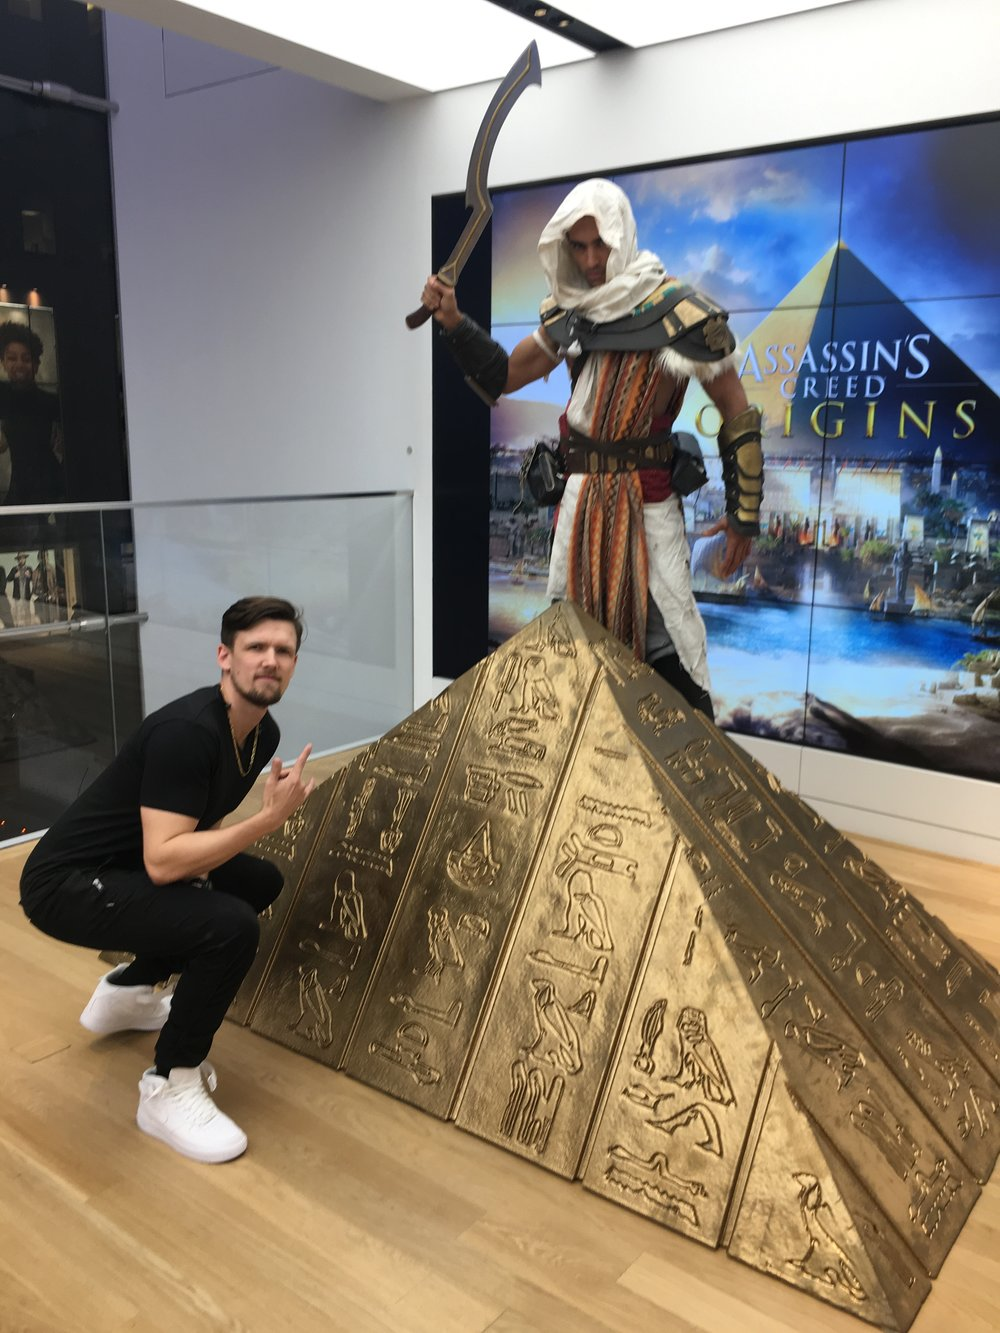 DJ CoolHand Assassins Creed Origins Microsoft Store NYC 2.jpeg